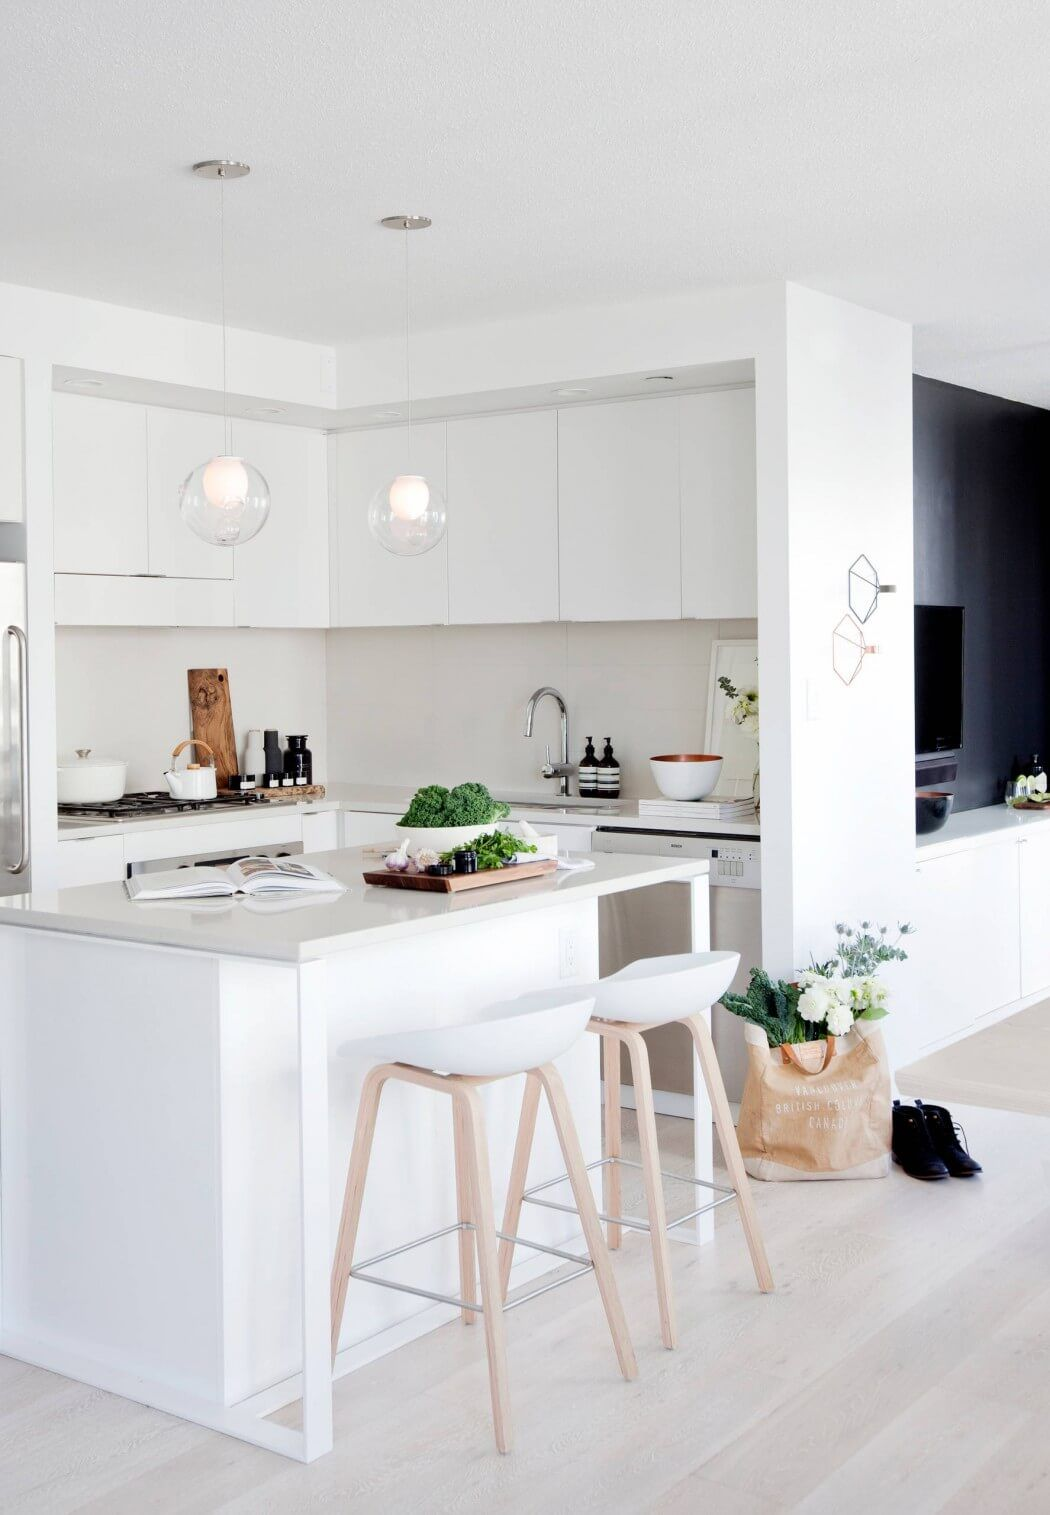 Black White and Wood | Kitchens, Countertop and Breakfast bars